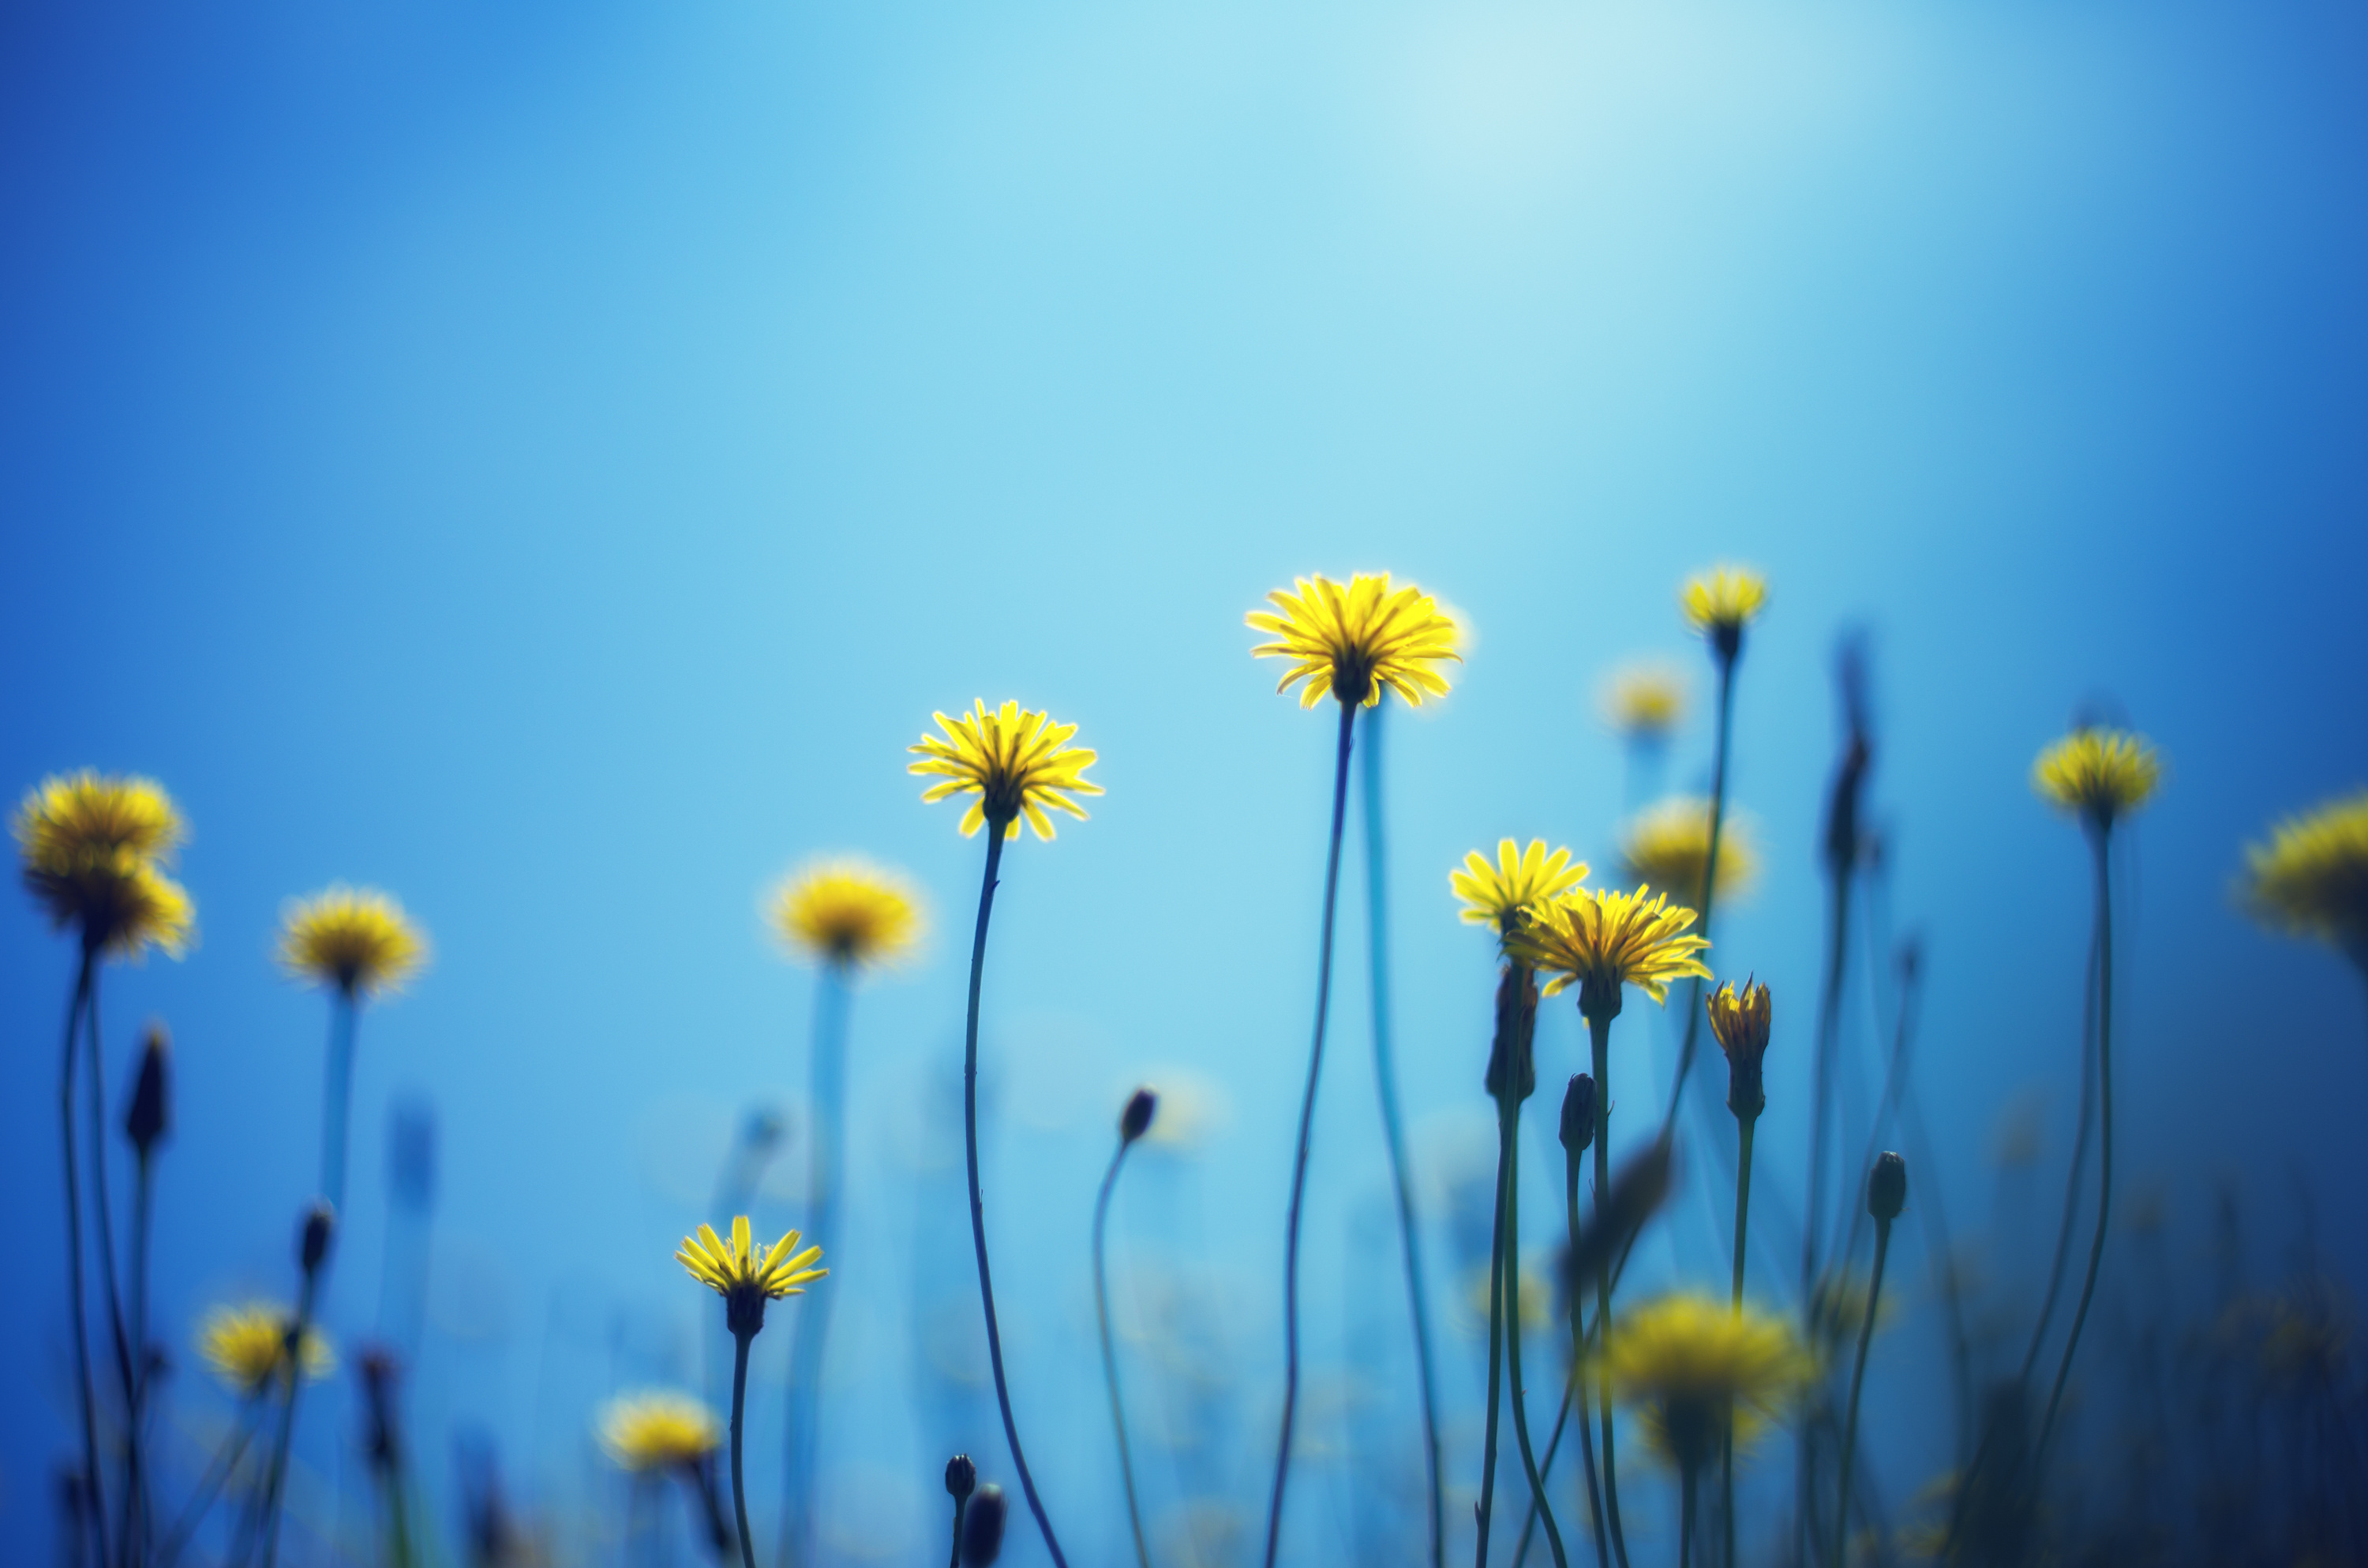 157543 download wallpaper Flowers, Background, Dandelions, Blur, Smooth screensavers and pictures for free